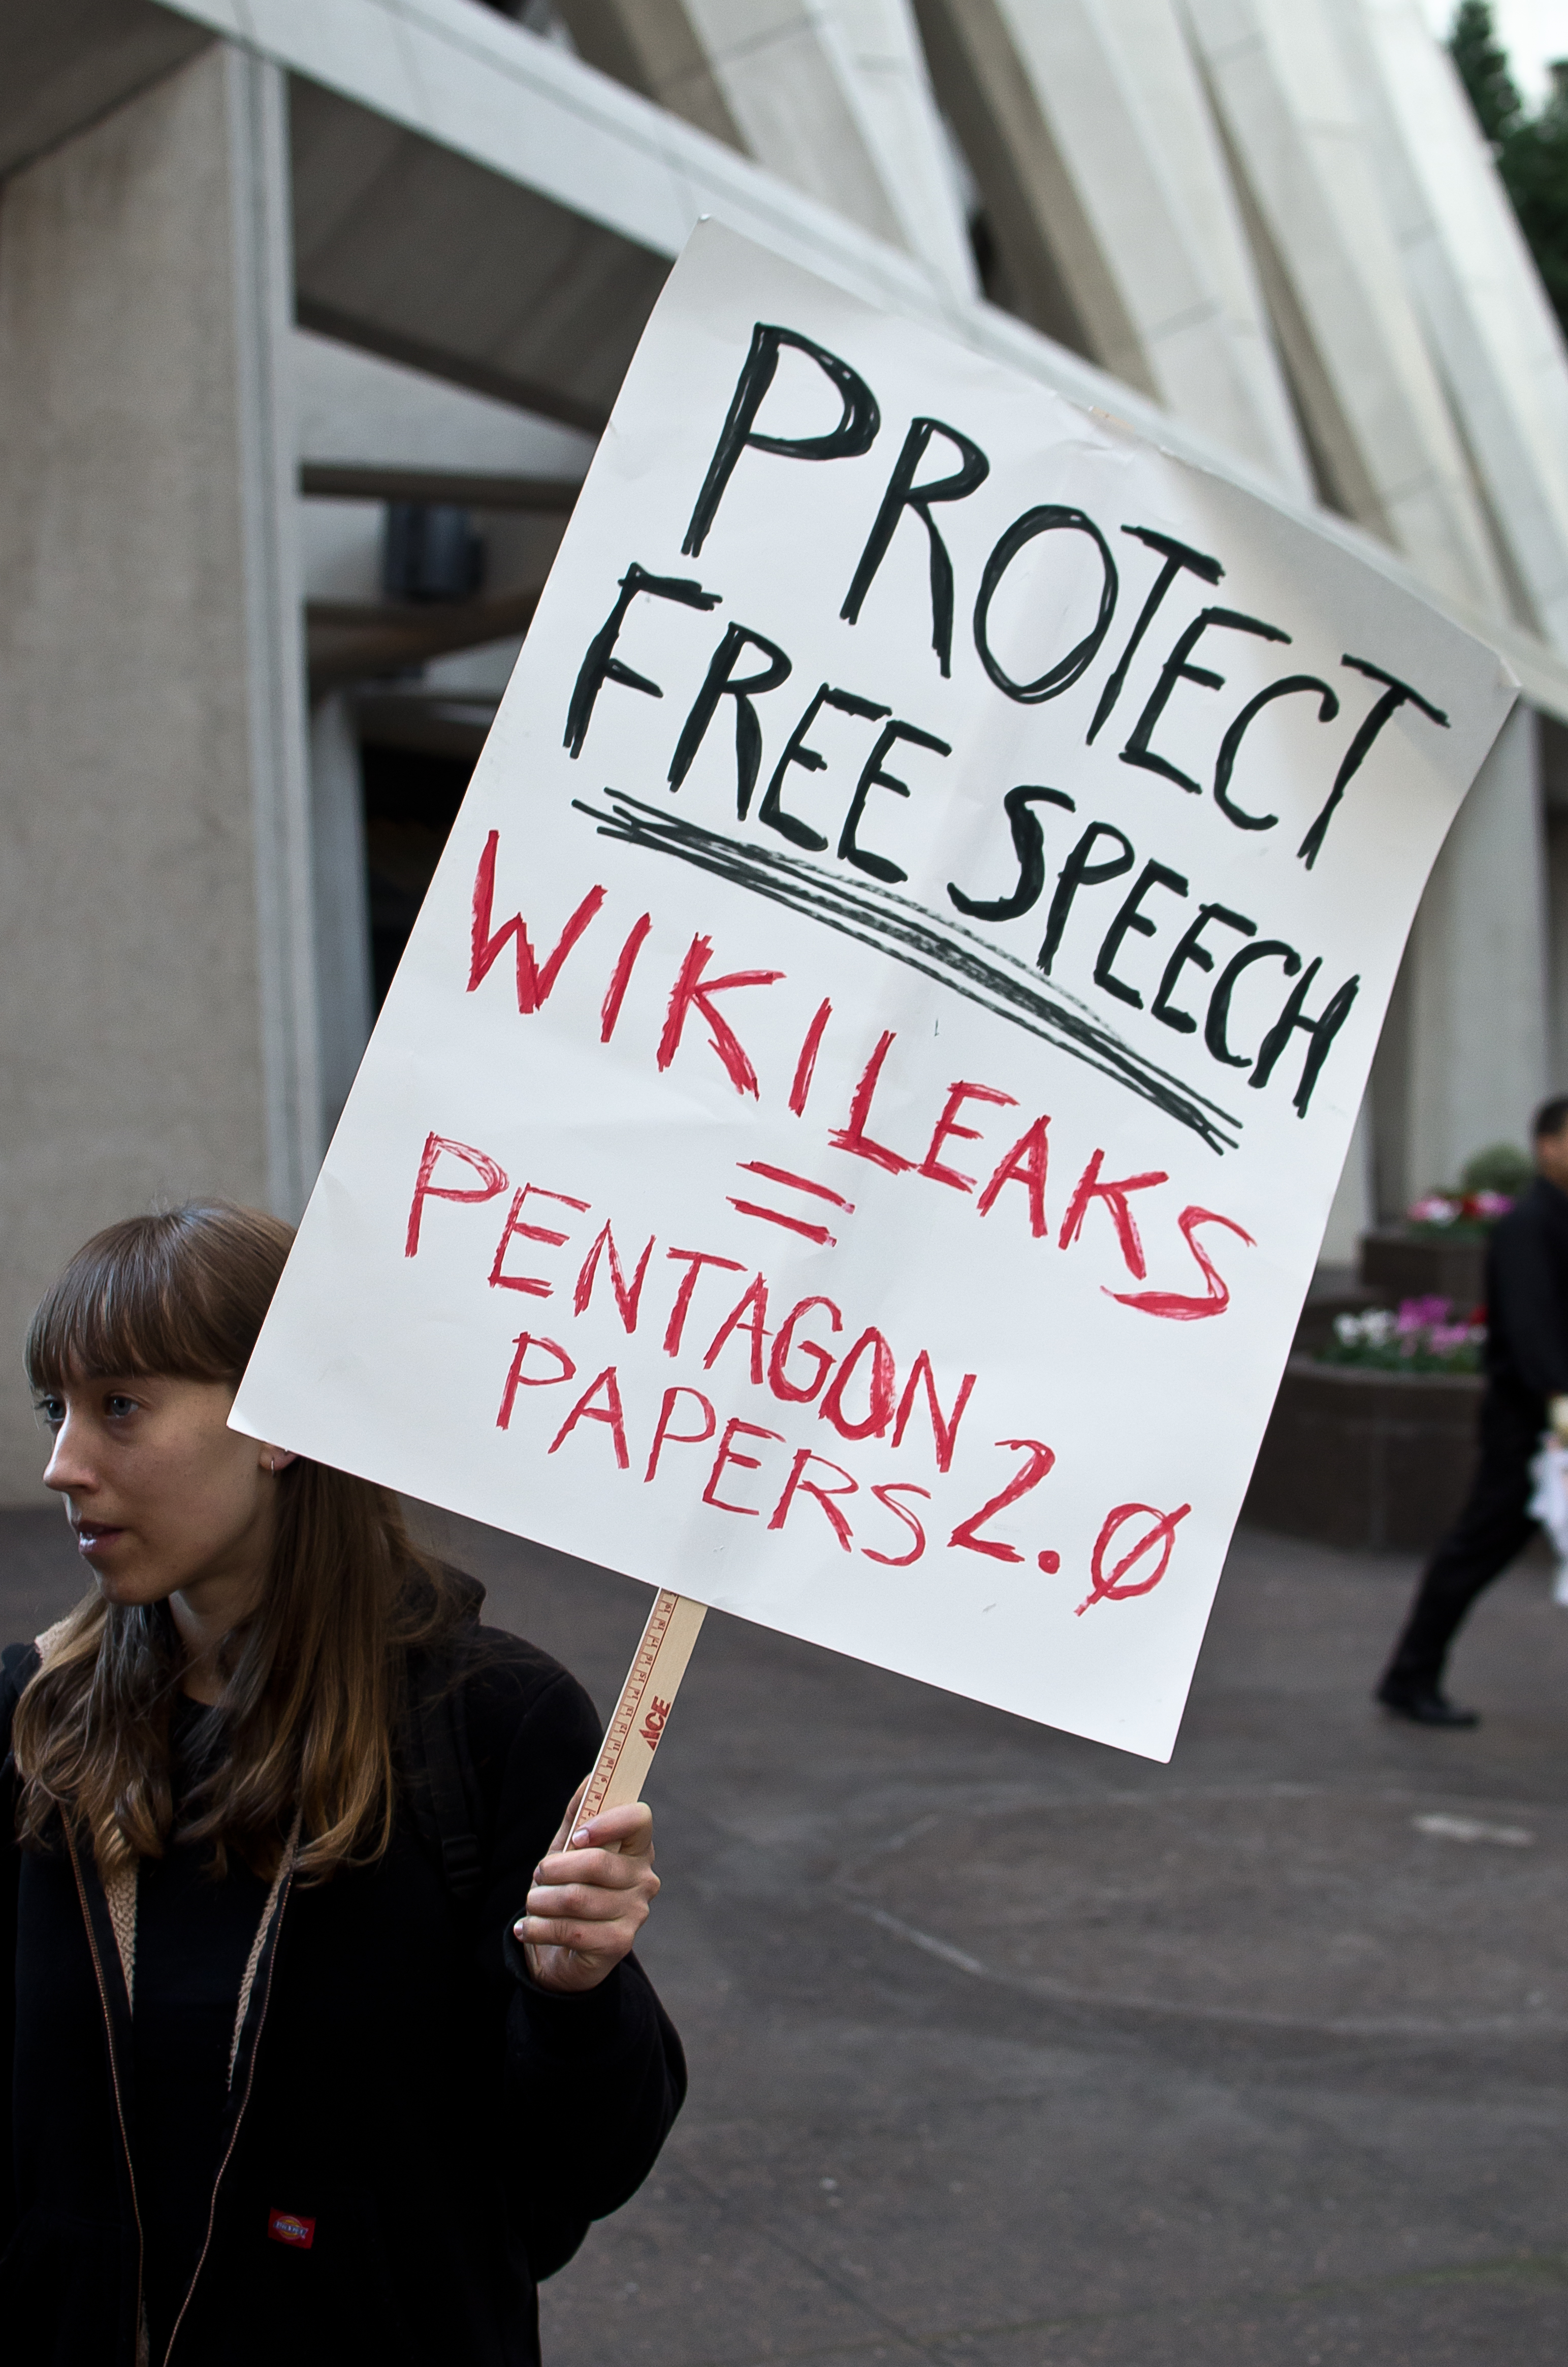 A WikiLeaks protester in support of Free Speech.